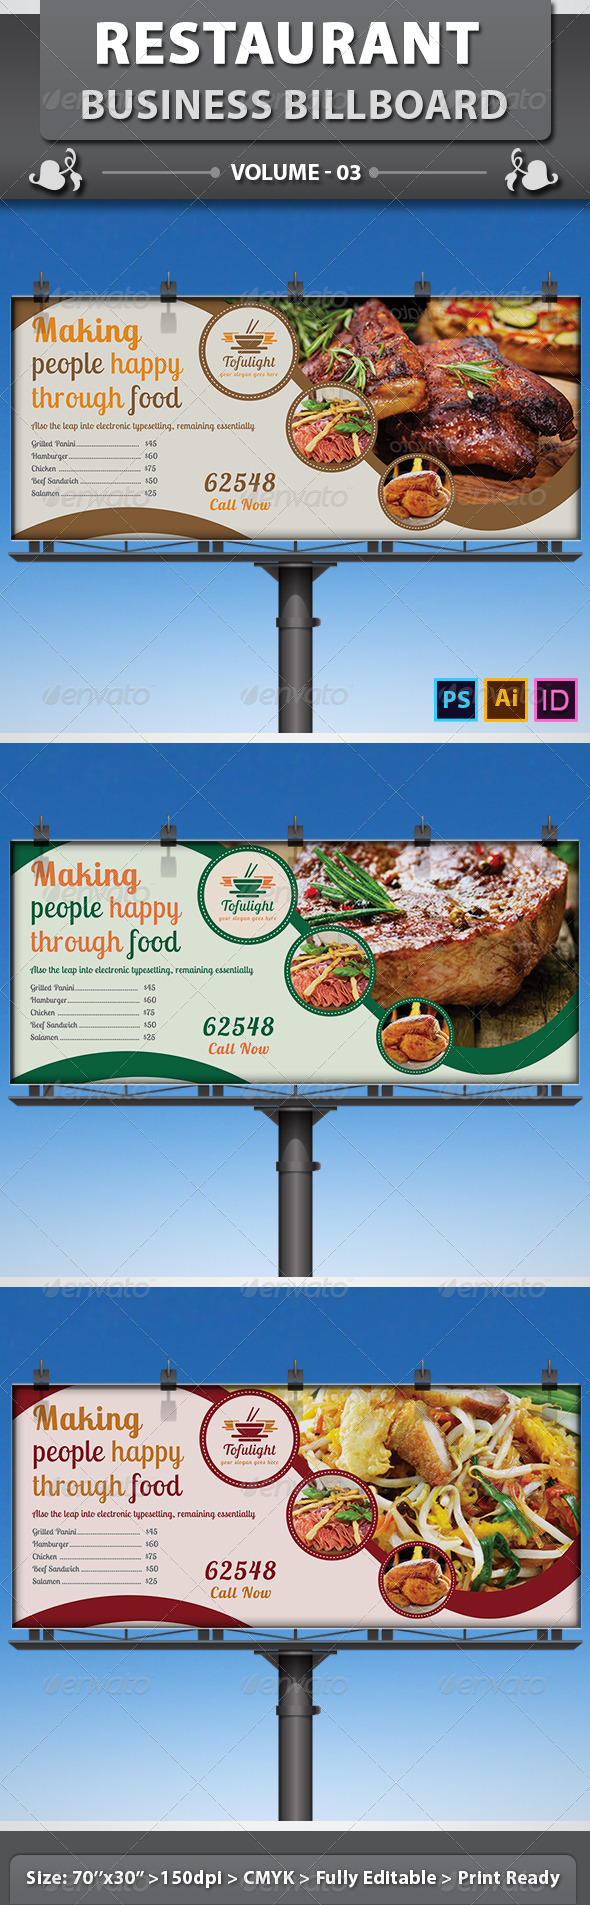 Restaurant Business Billboard | Volume 3 - Signage Print Templates